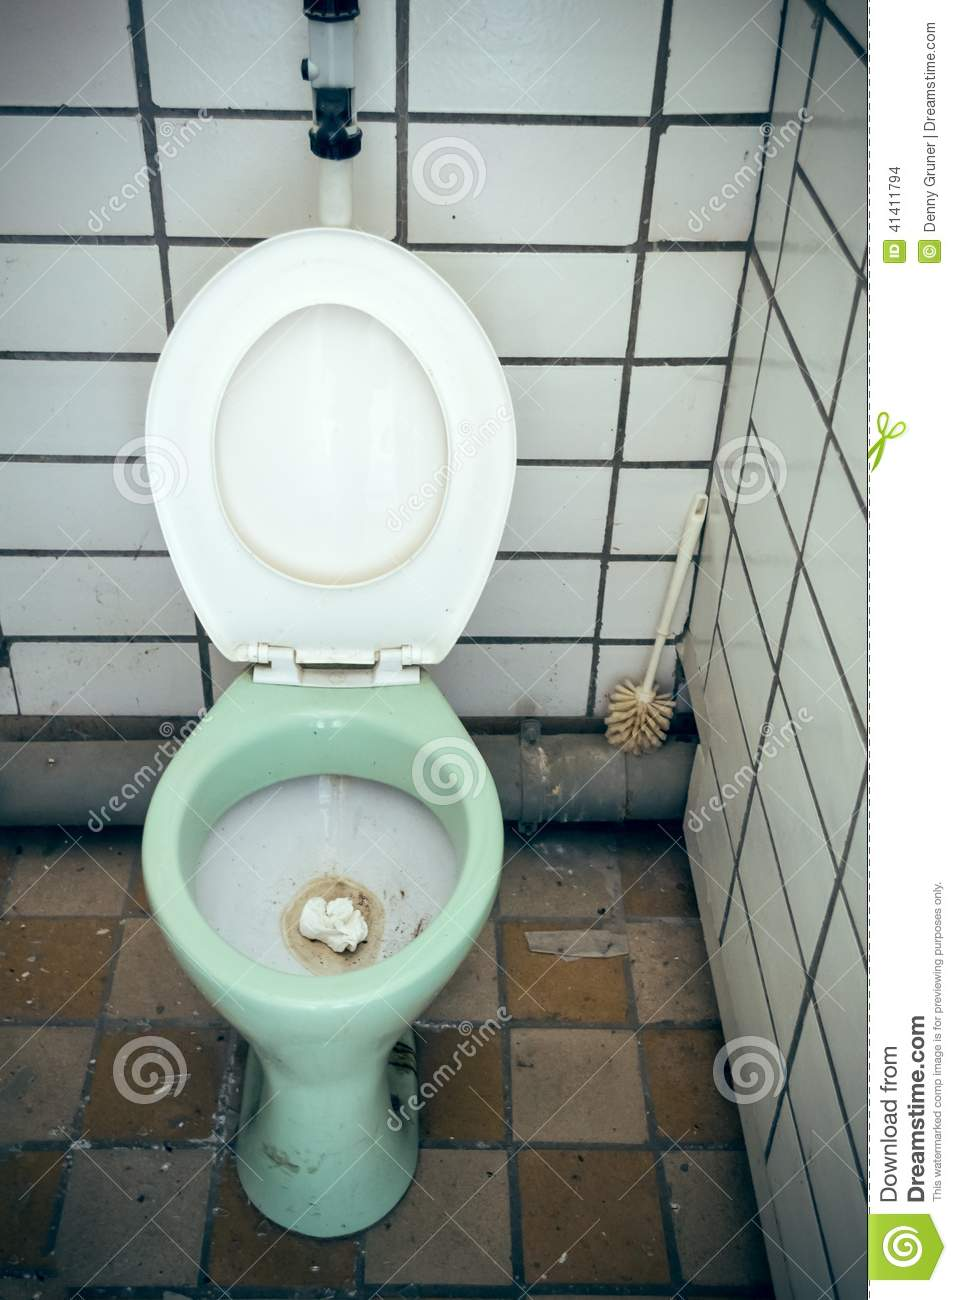 Toilet With Toilet Seat Open Stock Photo Image 41411794